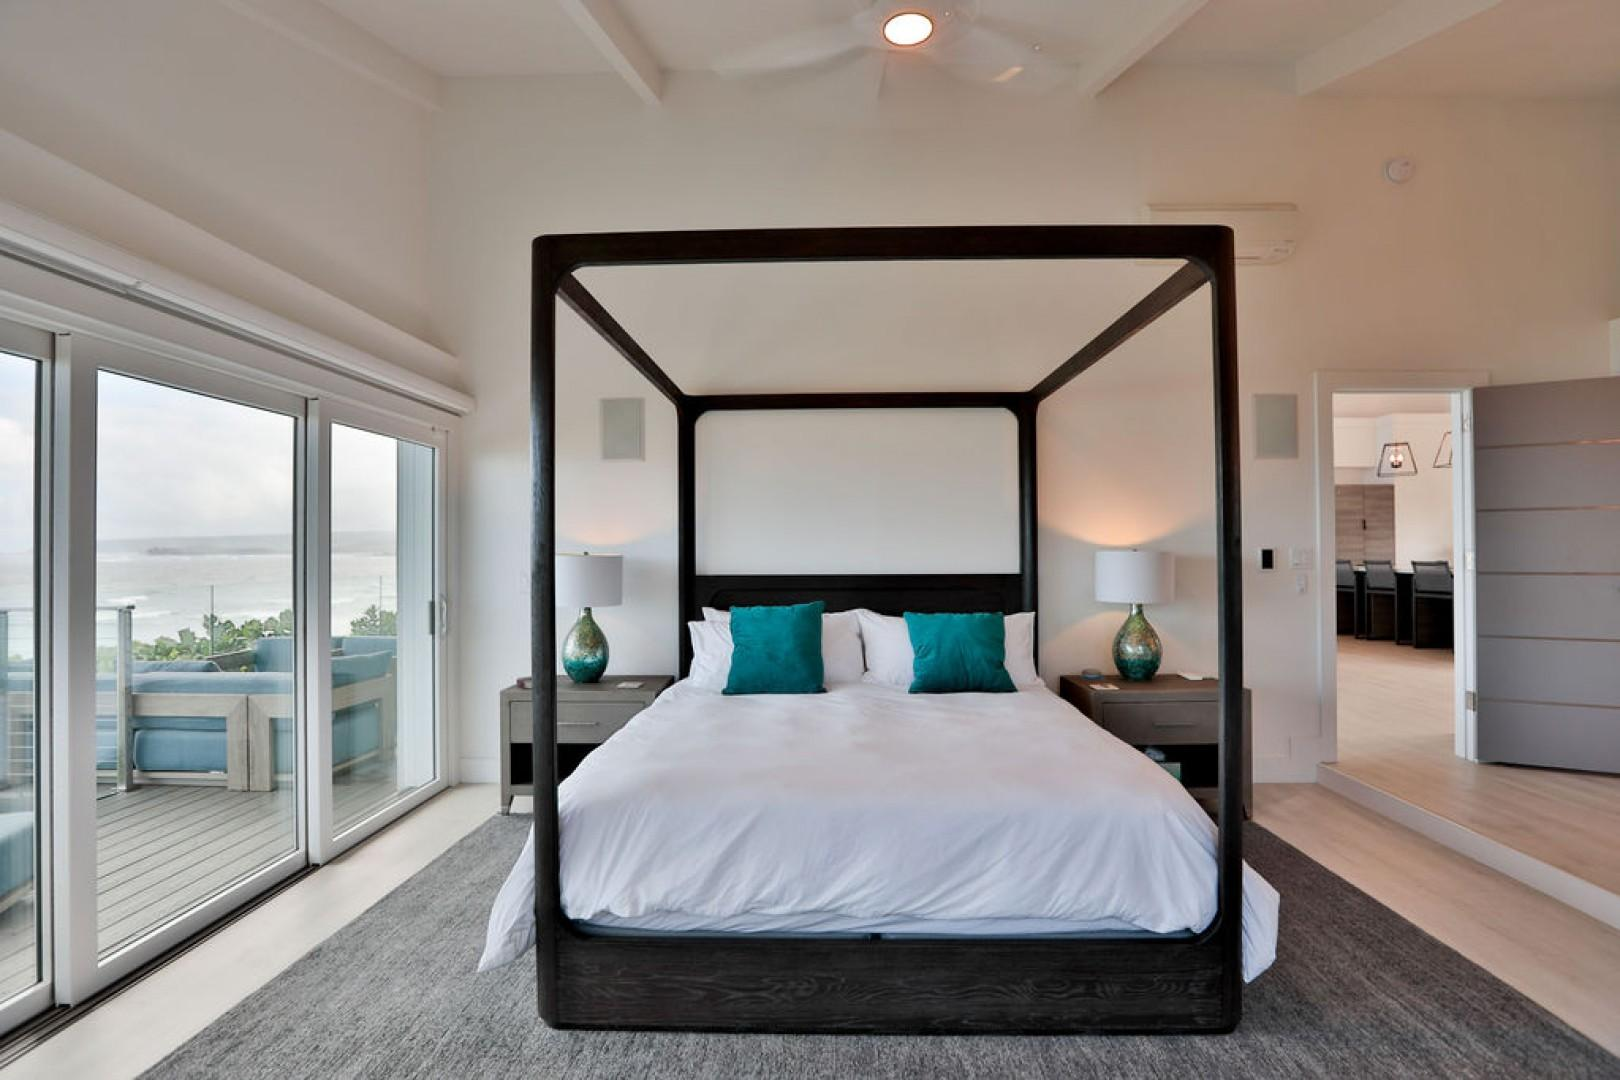 2nd Master Bedroom with ocean views and lanai access